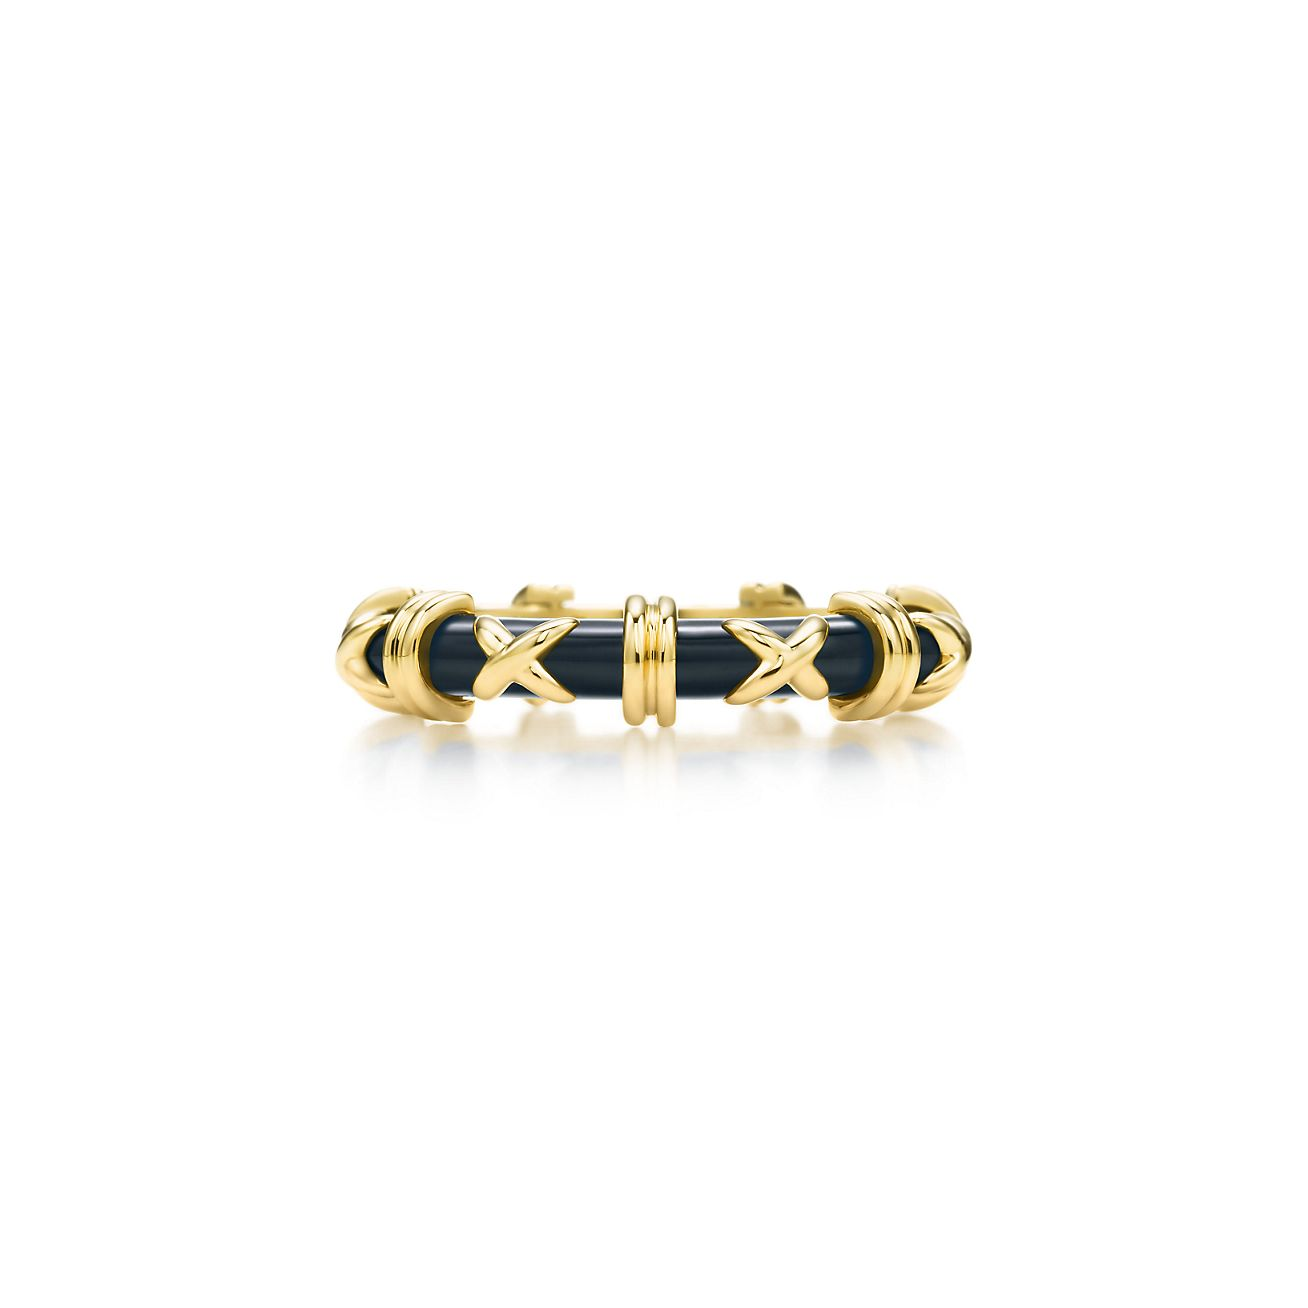 Tiffany Amp Co Schlumberger Croisillon Ring In 18k Gold With Enamel Tiffany Amp Co